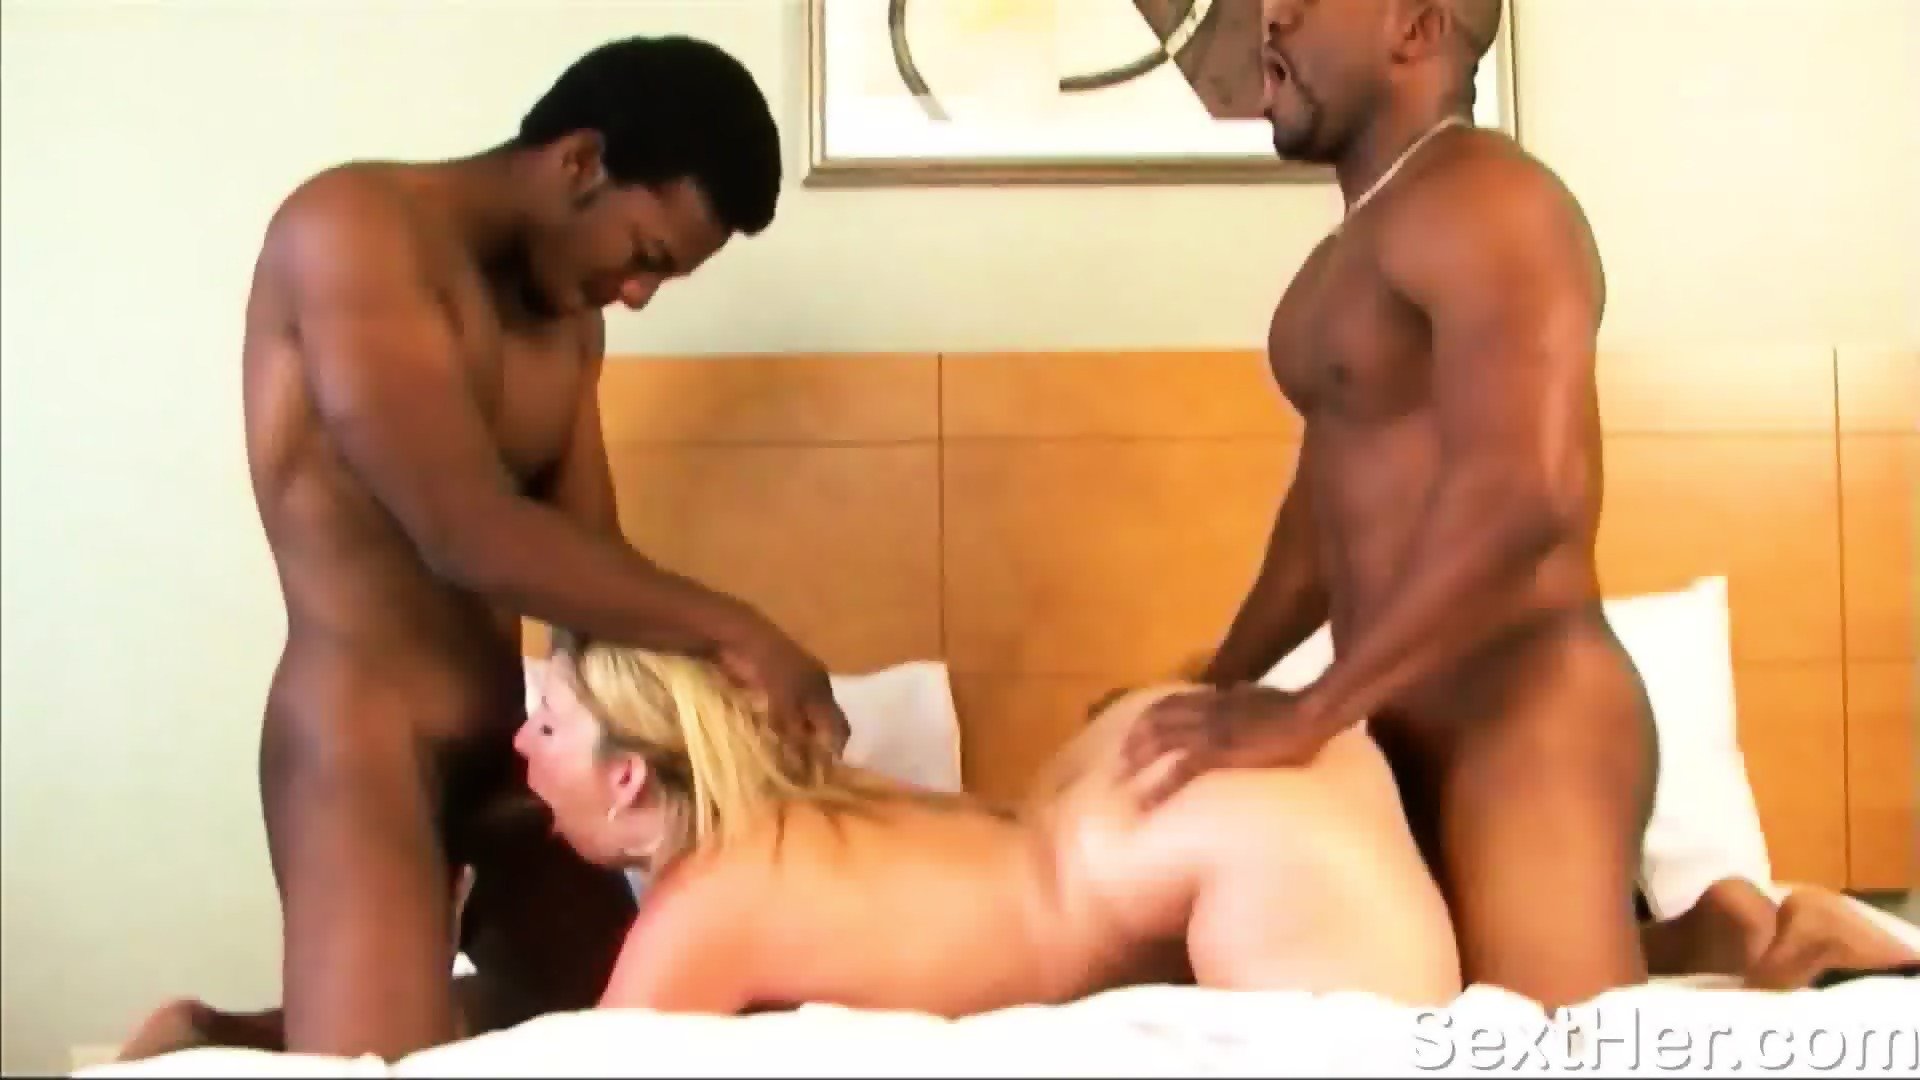 Min milfs pays the rent fucking the landlord porn videos